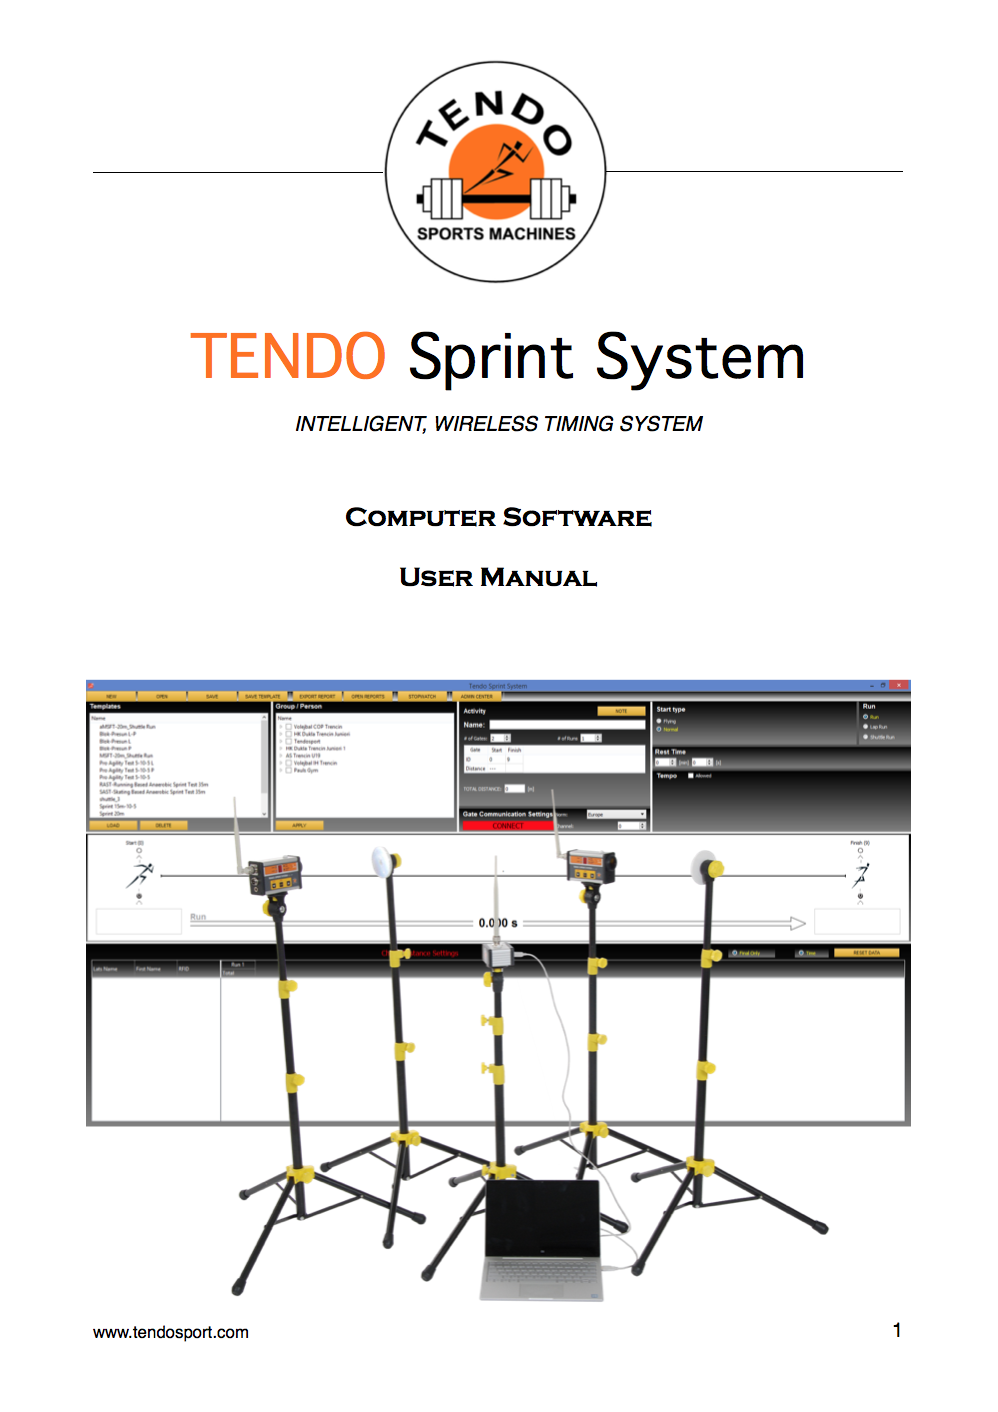 Tendo Sprint System Software manual cover photo